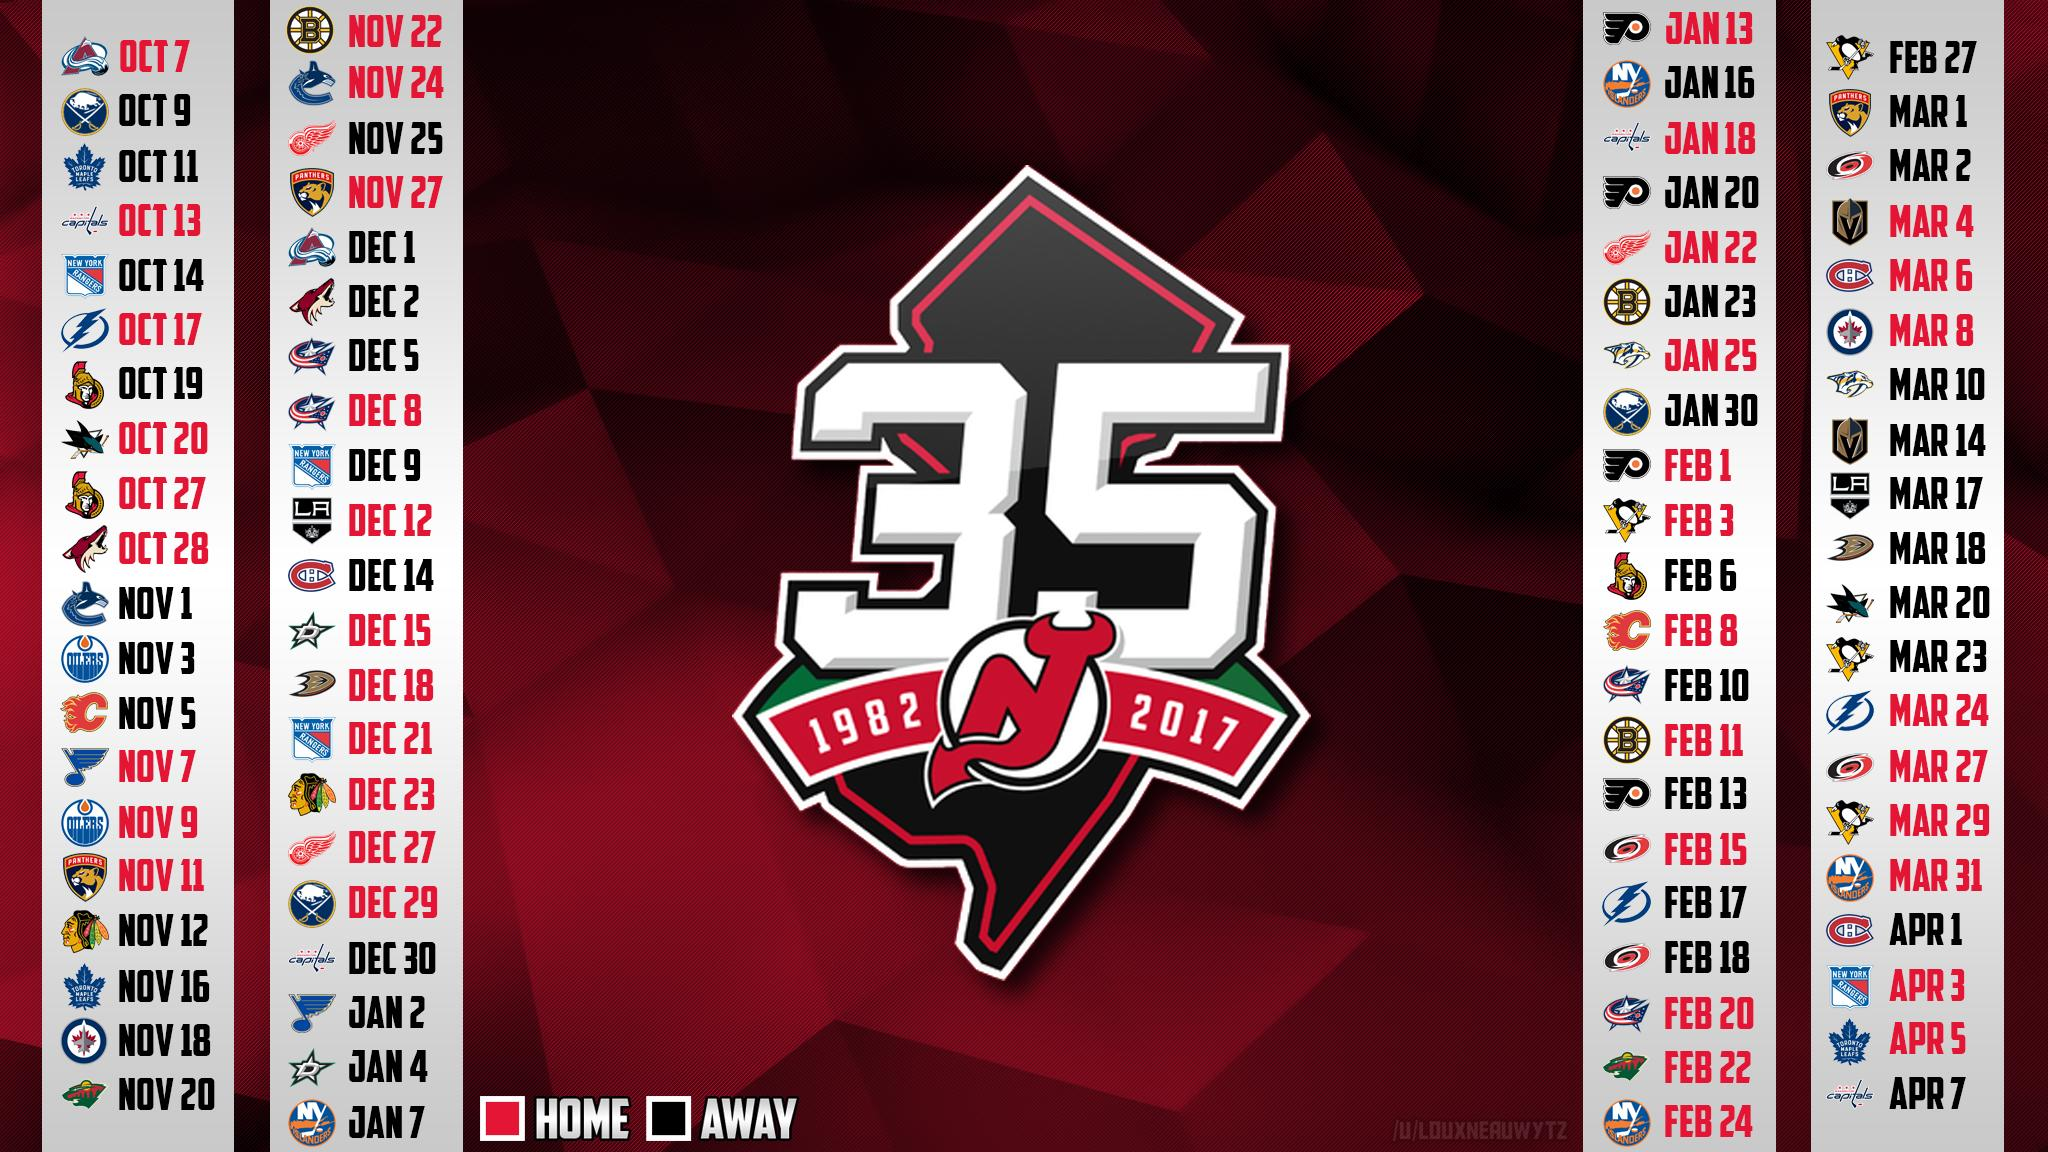 2048x1152 - New Jersey Devils Wallpapers 9